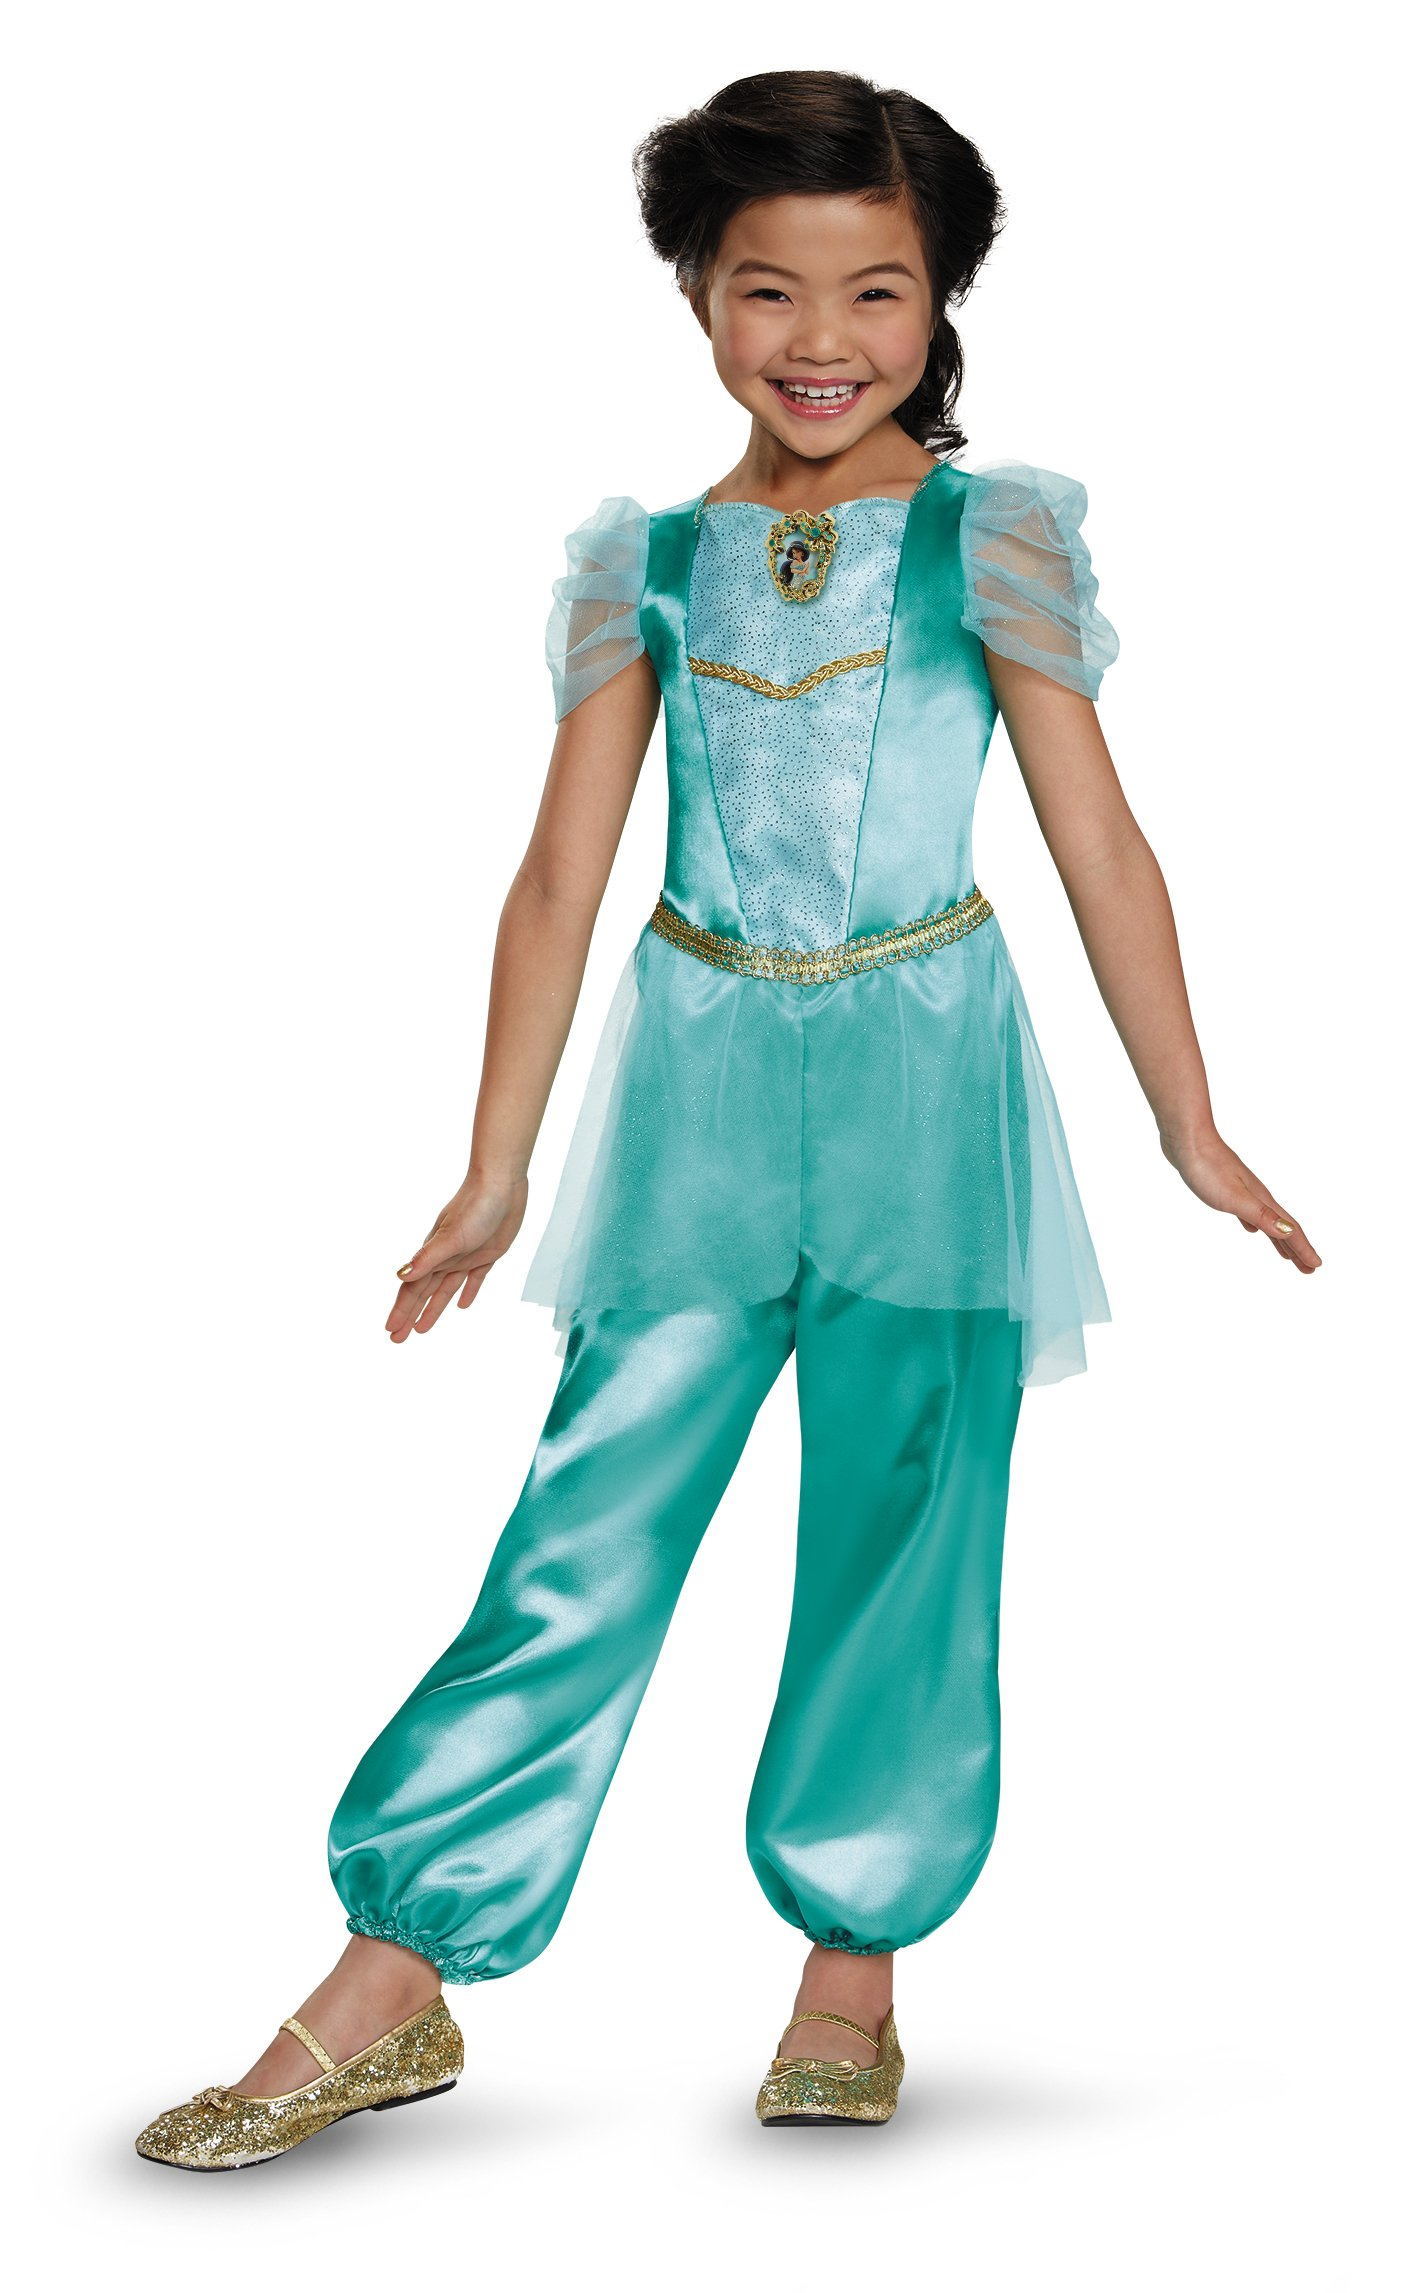 Jasmine Classic Disney Princess Aladdin Costume, One Color, Medium/7-8